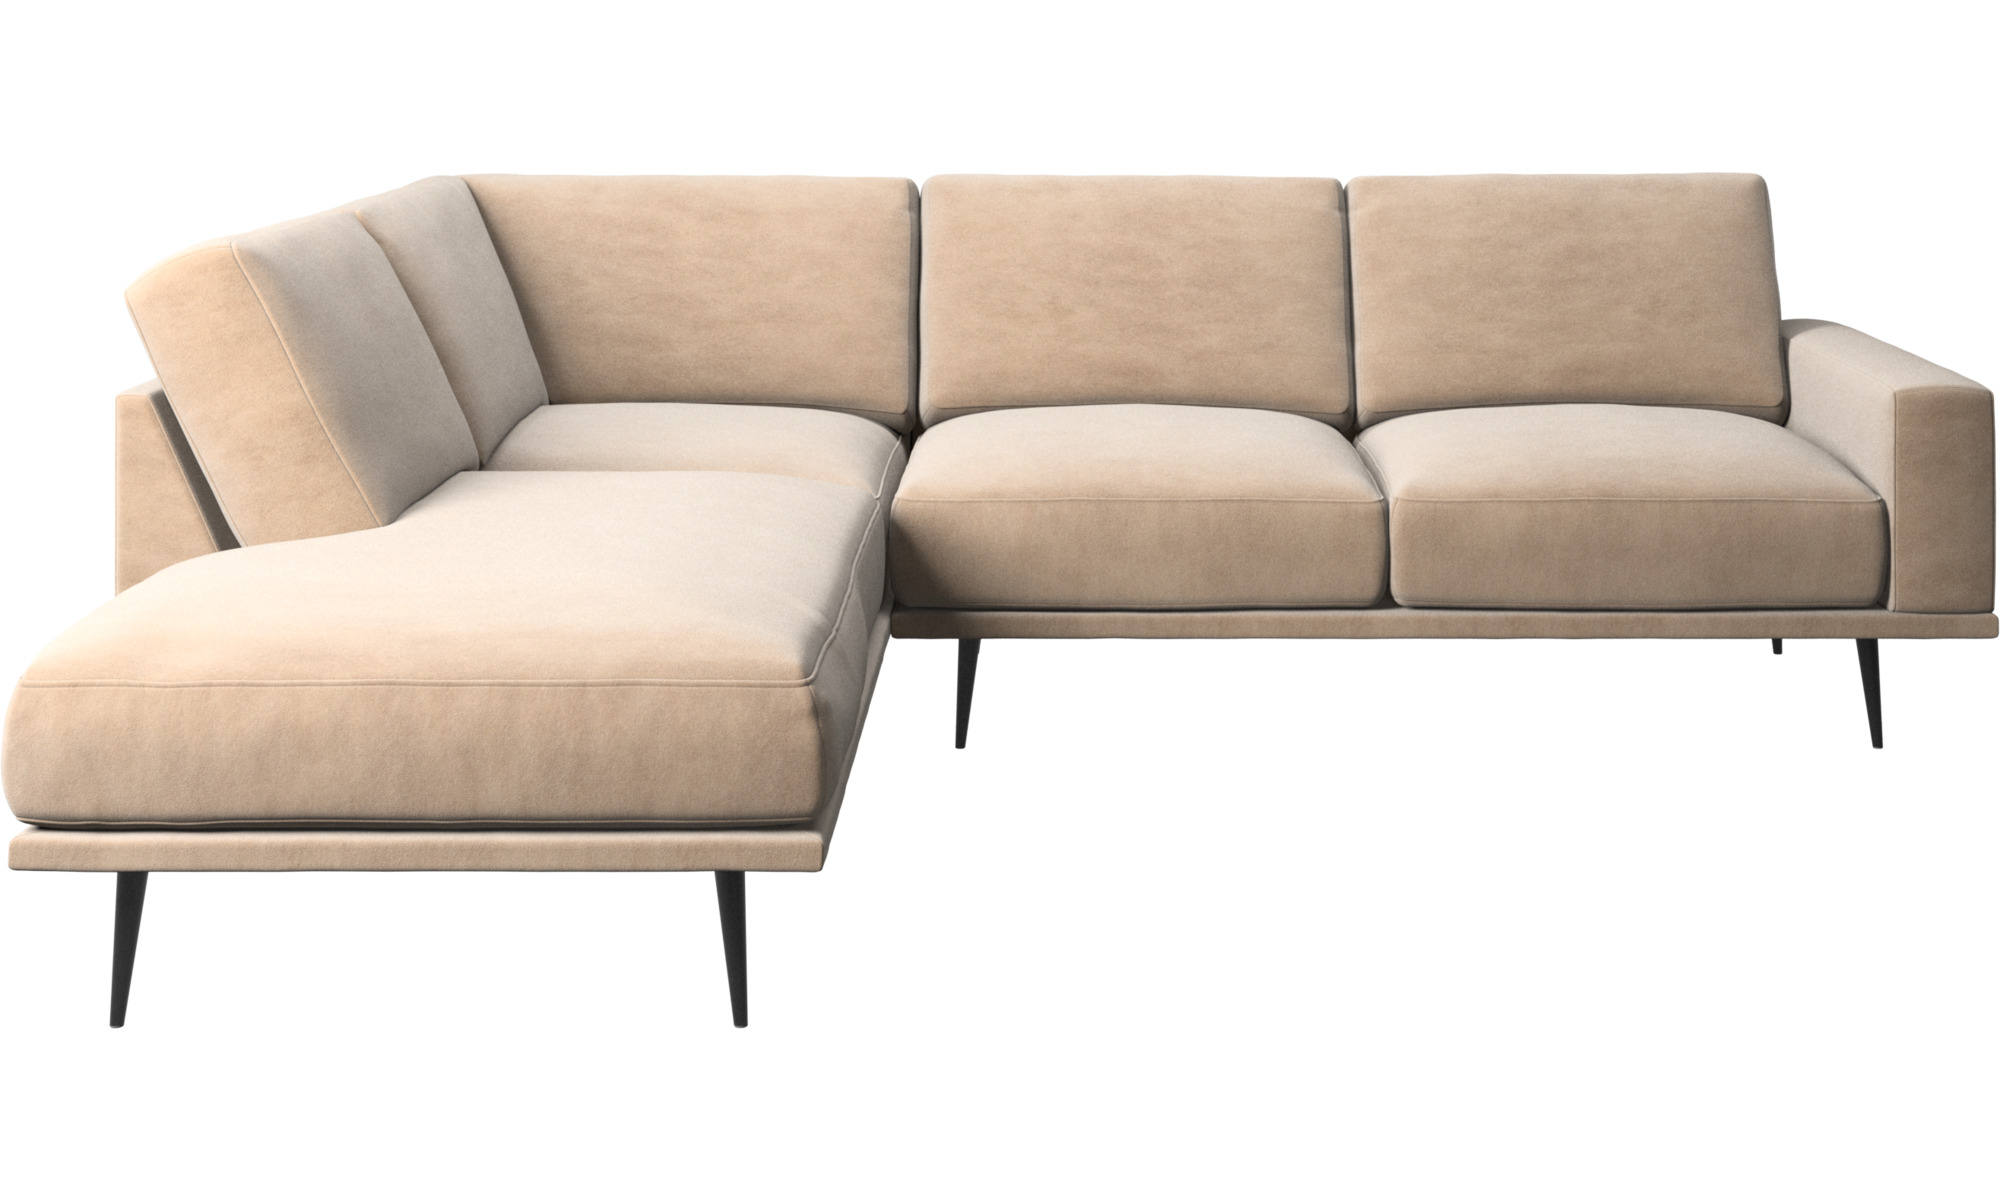 boconcept sleeper sofa review apartment size with chaise lounge fargo home co